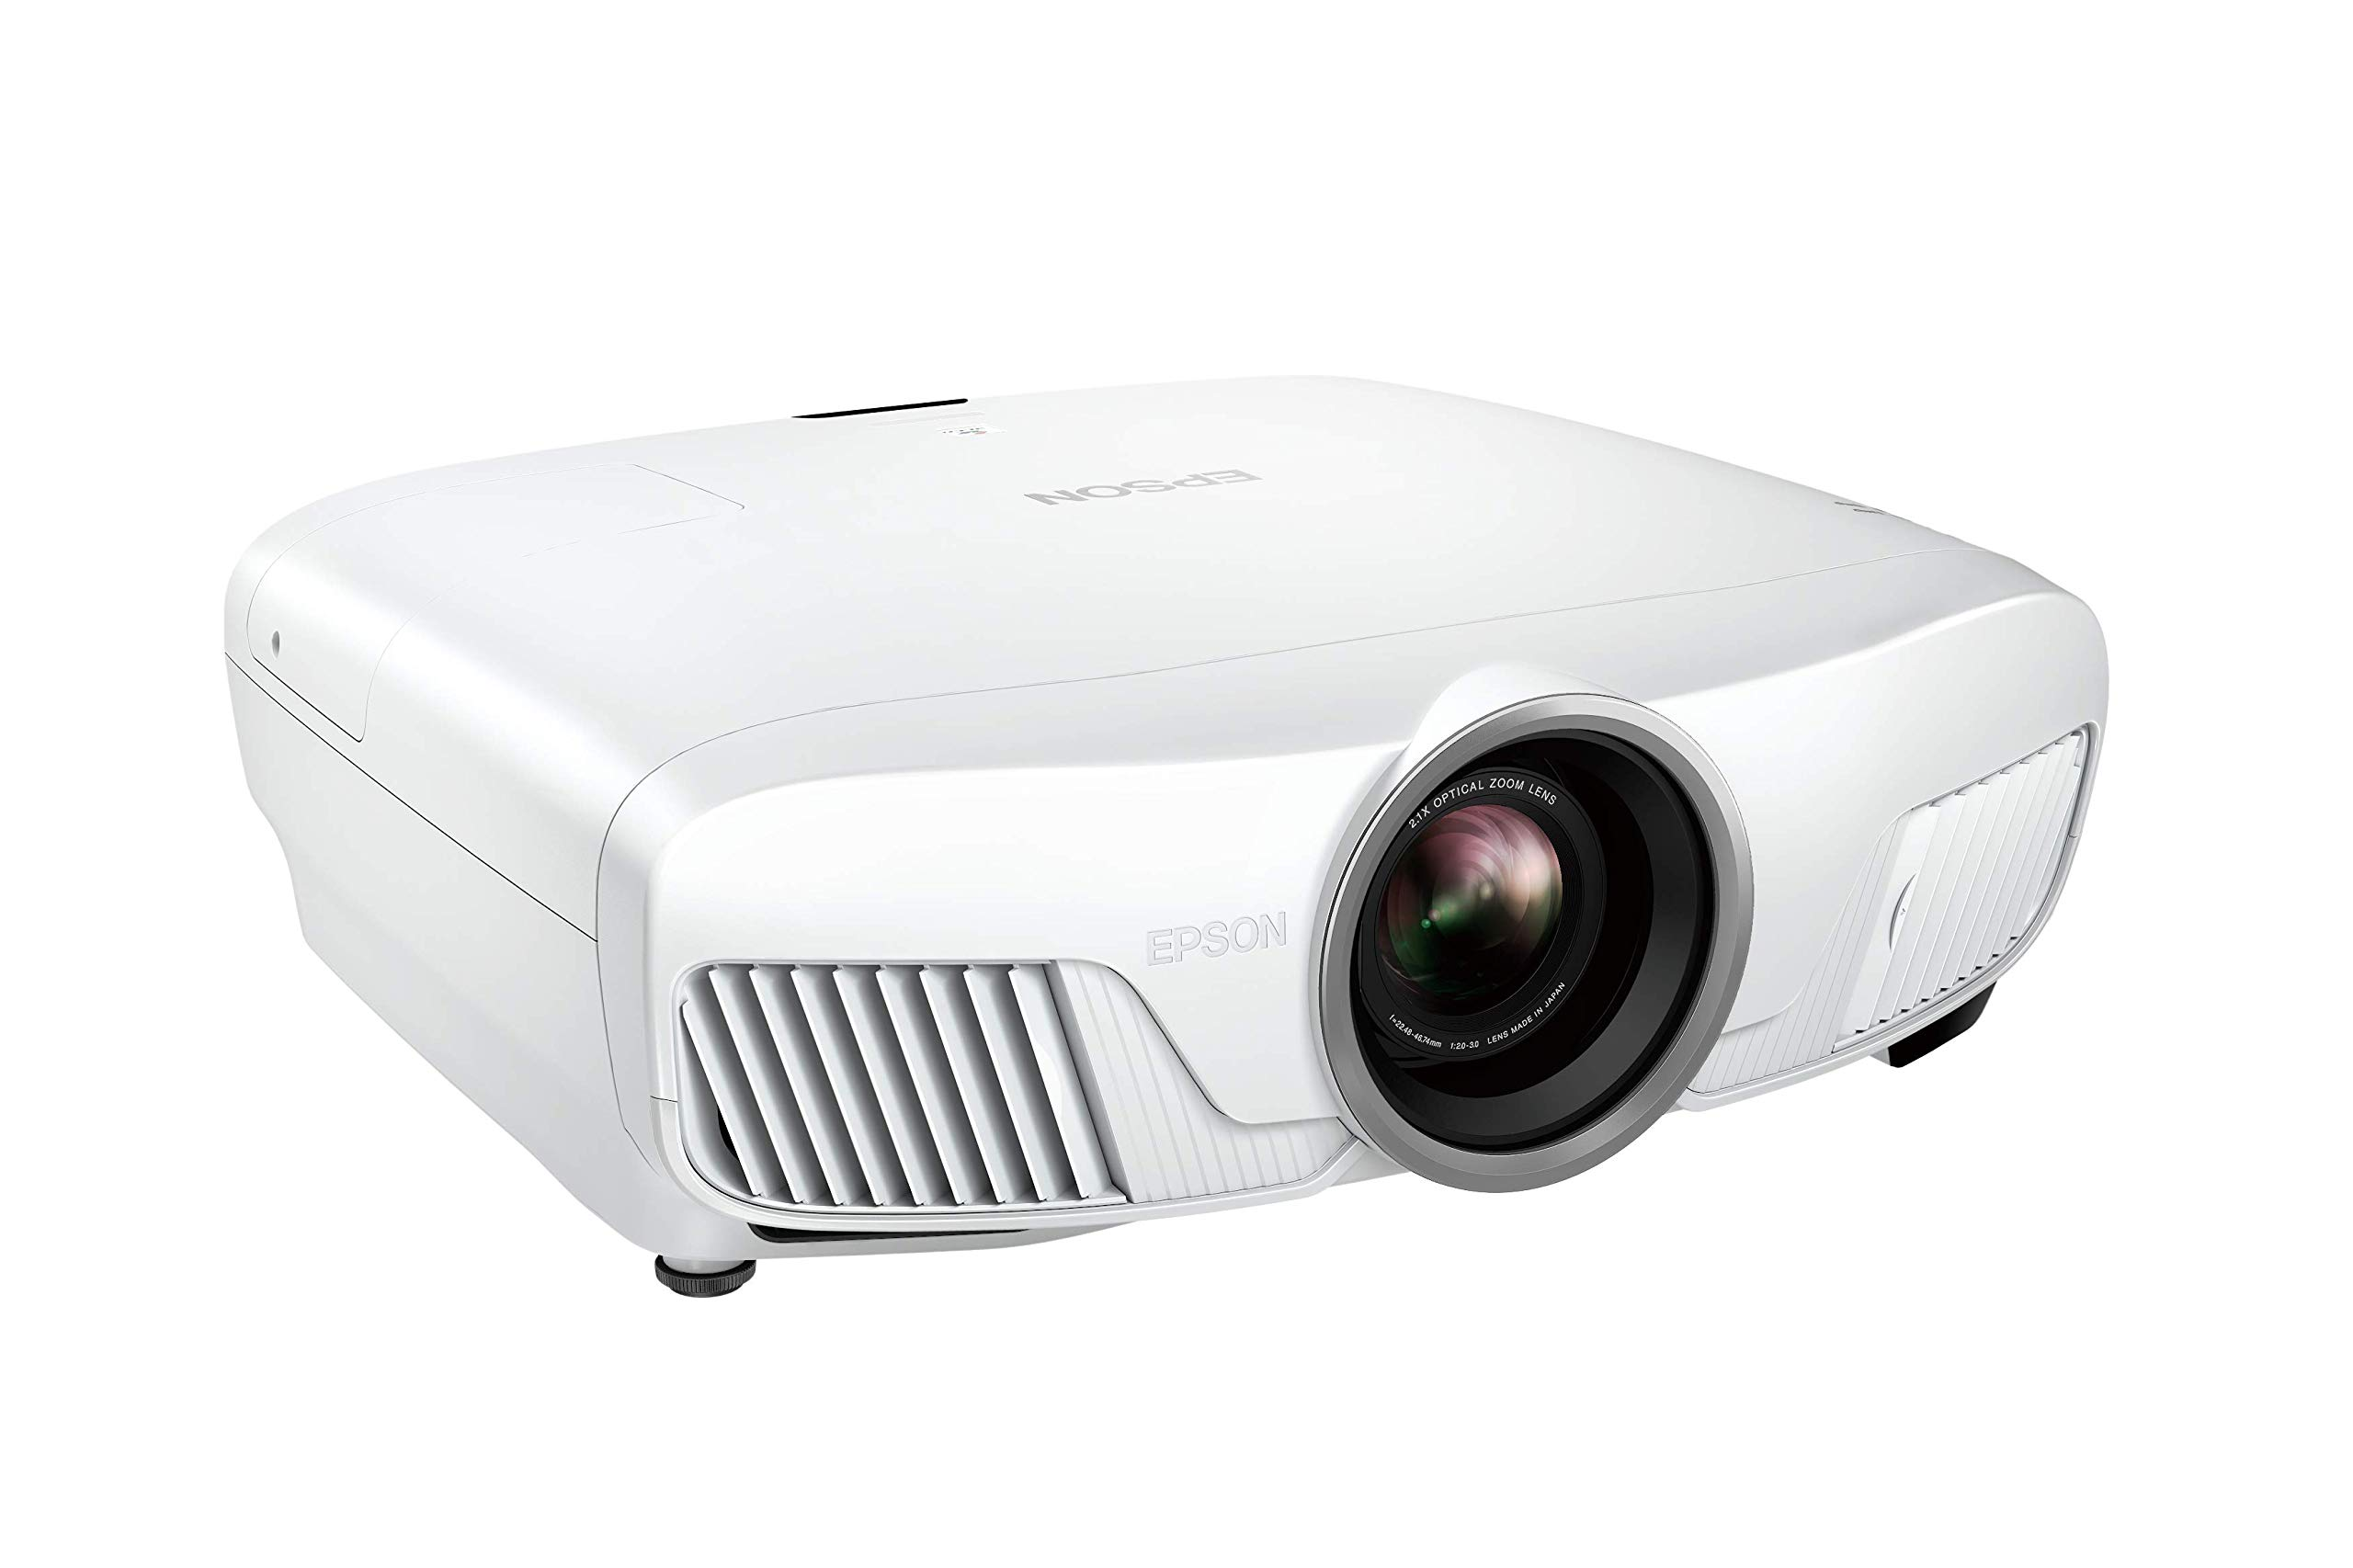 712ovE%2BAWNL - Epson EH-TW7400 3LCD, 4K Pro UHD Super Resolution, 2400 Lumens, 300 Inch Display, Motorised Optics, Home Cinema Projector - White